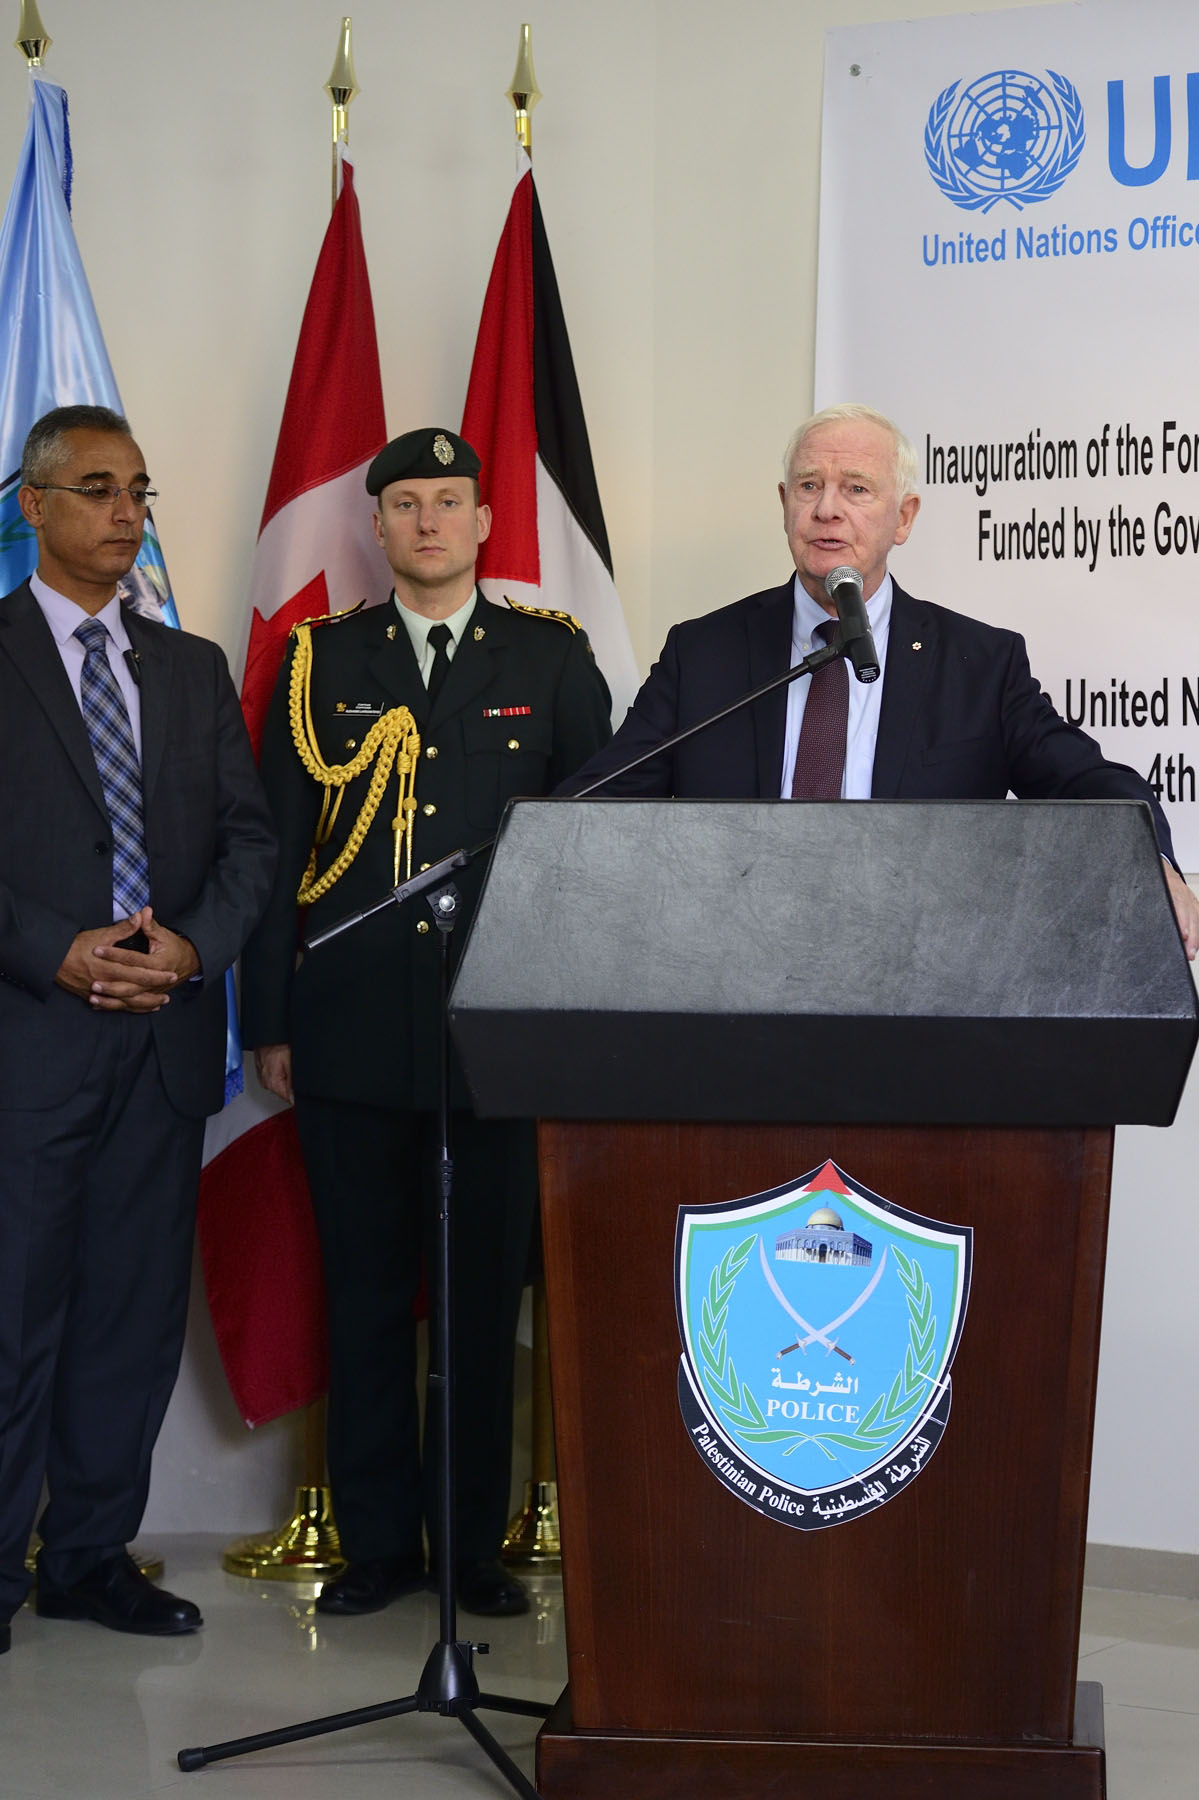 The Governor General delivered brief remarks on this occasion.